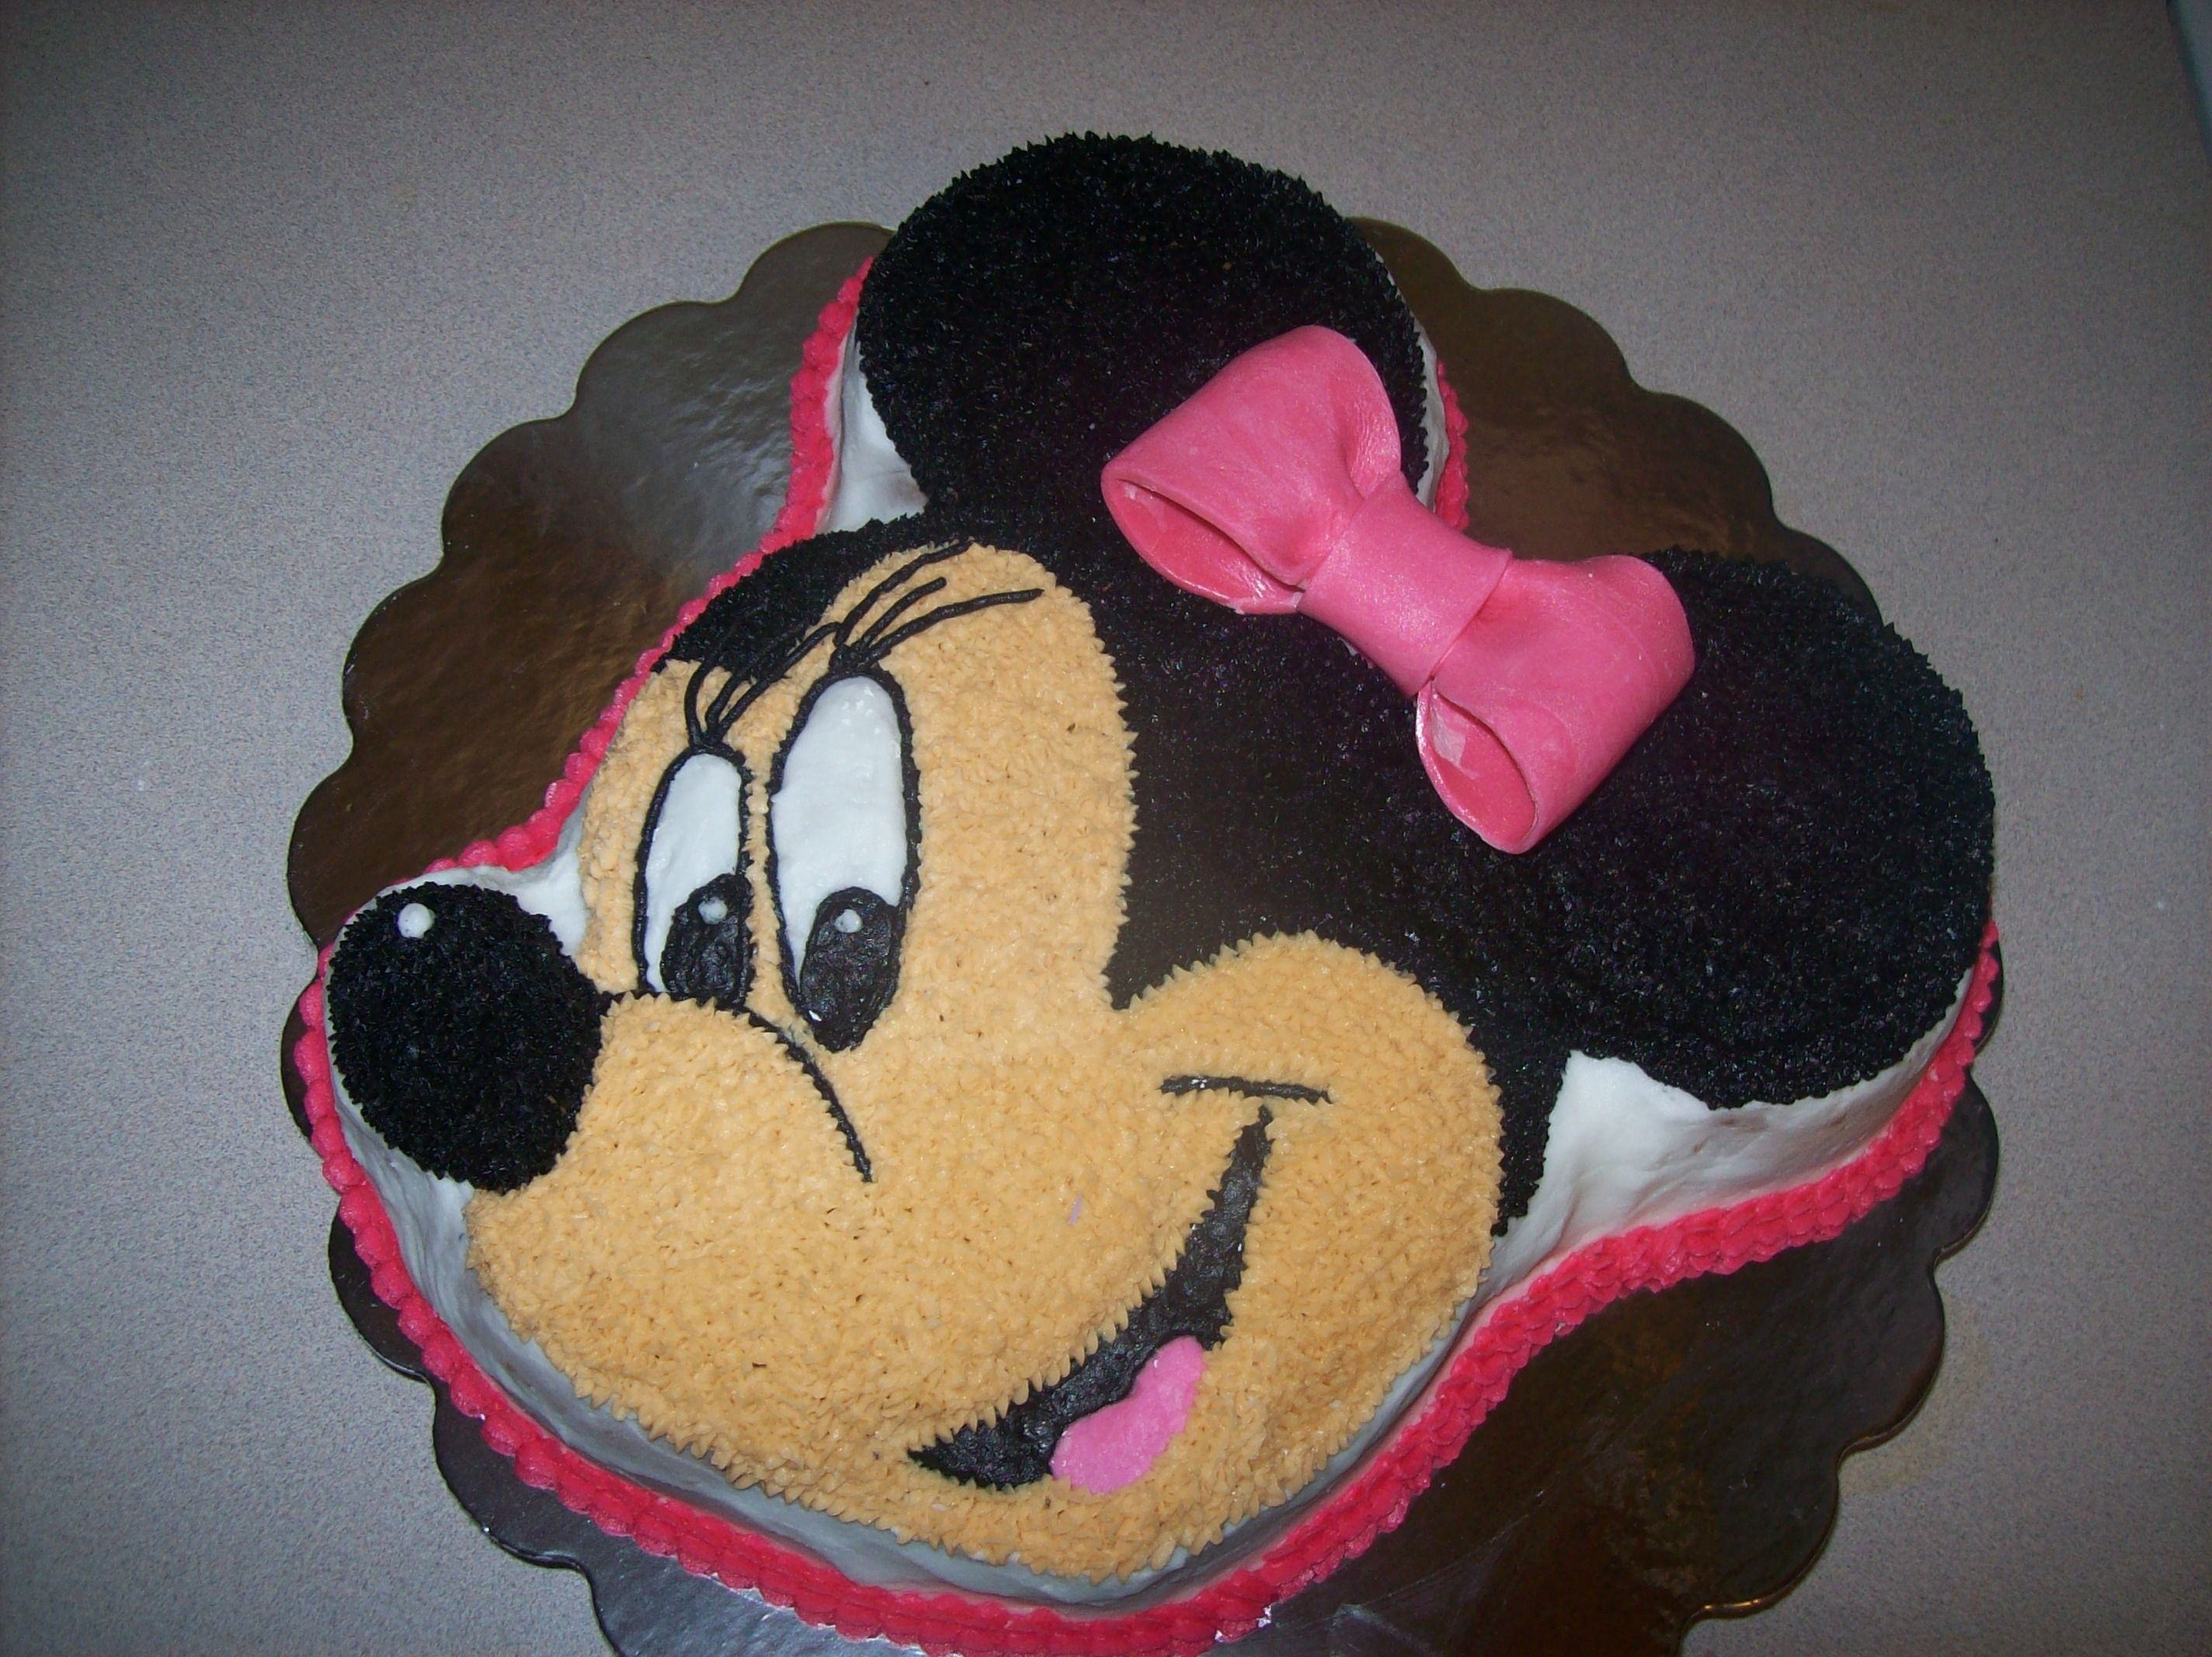 Fine Minnie Mouse Cake Minnie Mouse Cake Minnie Mouse Cake Pan Funny Birthday Cards Online Barepcheapnameinfo